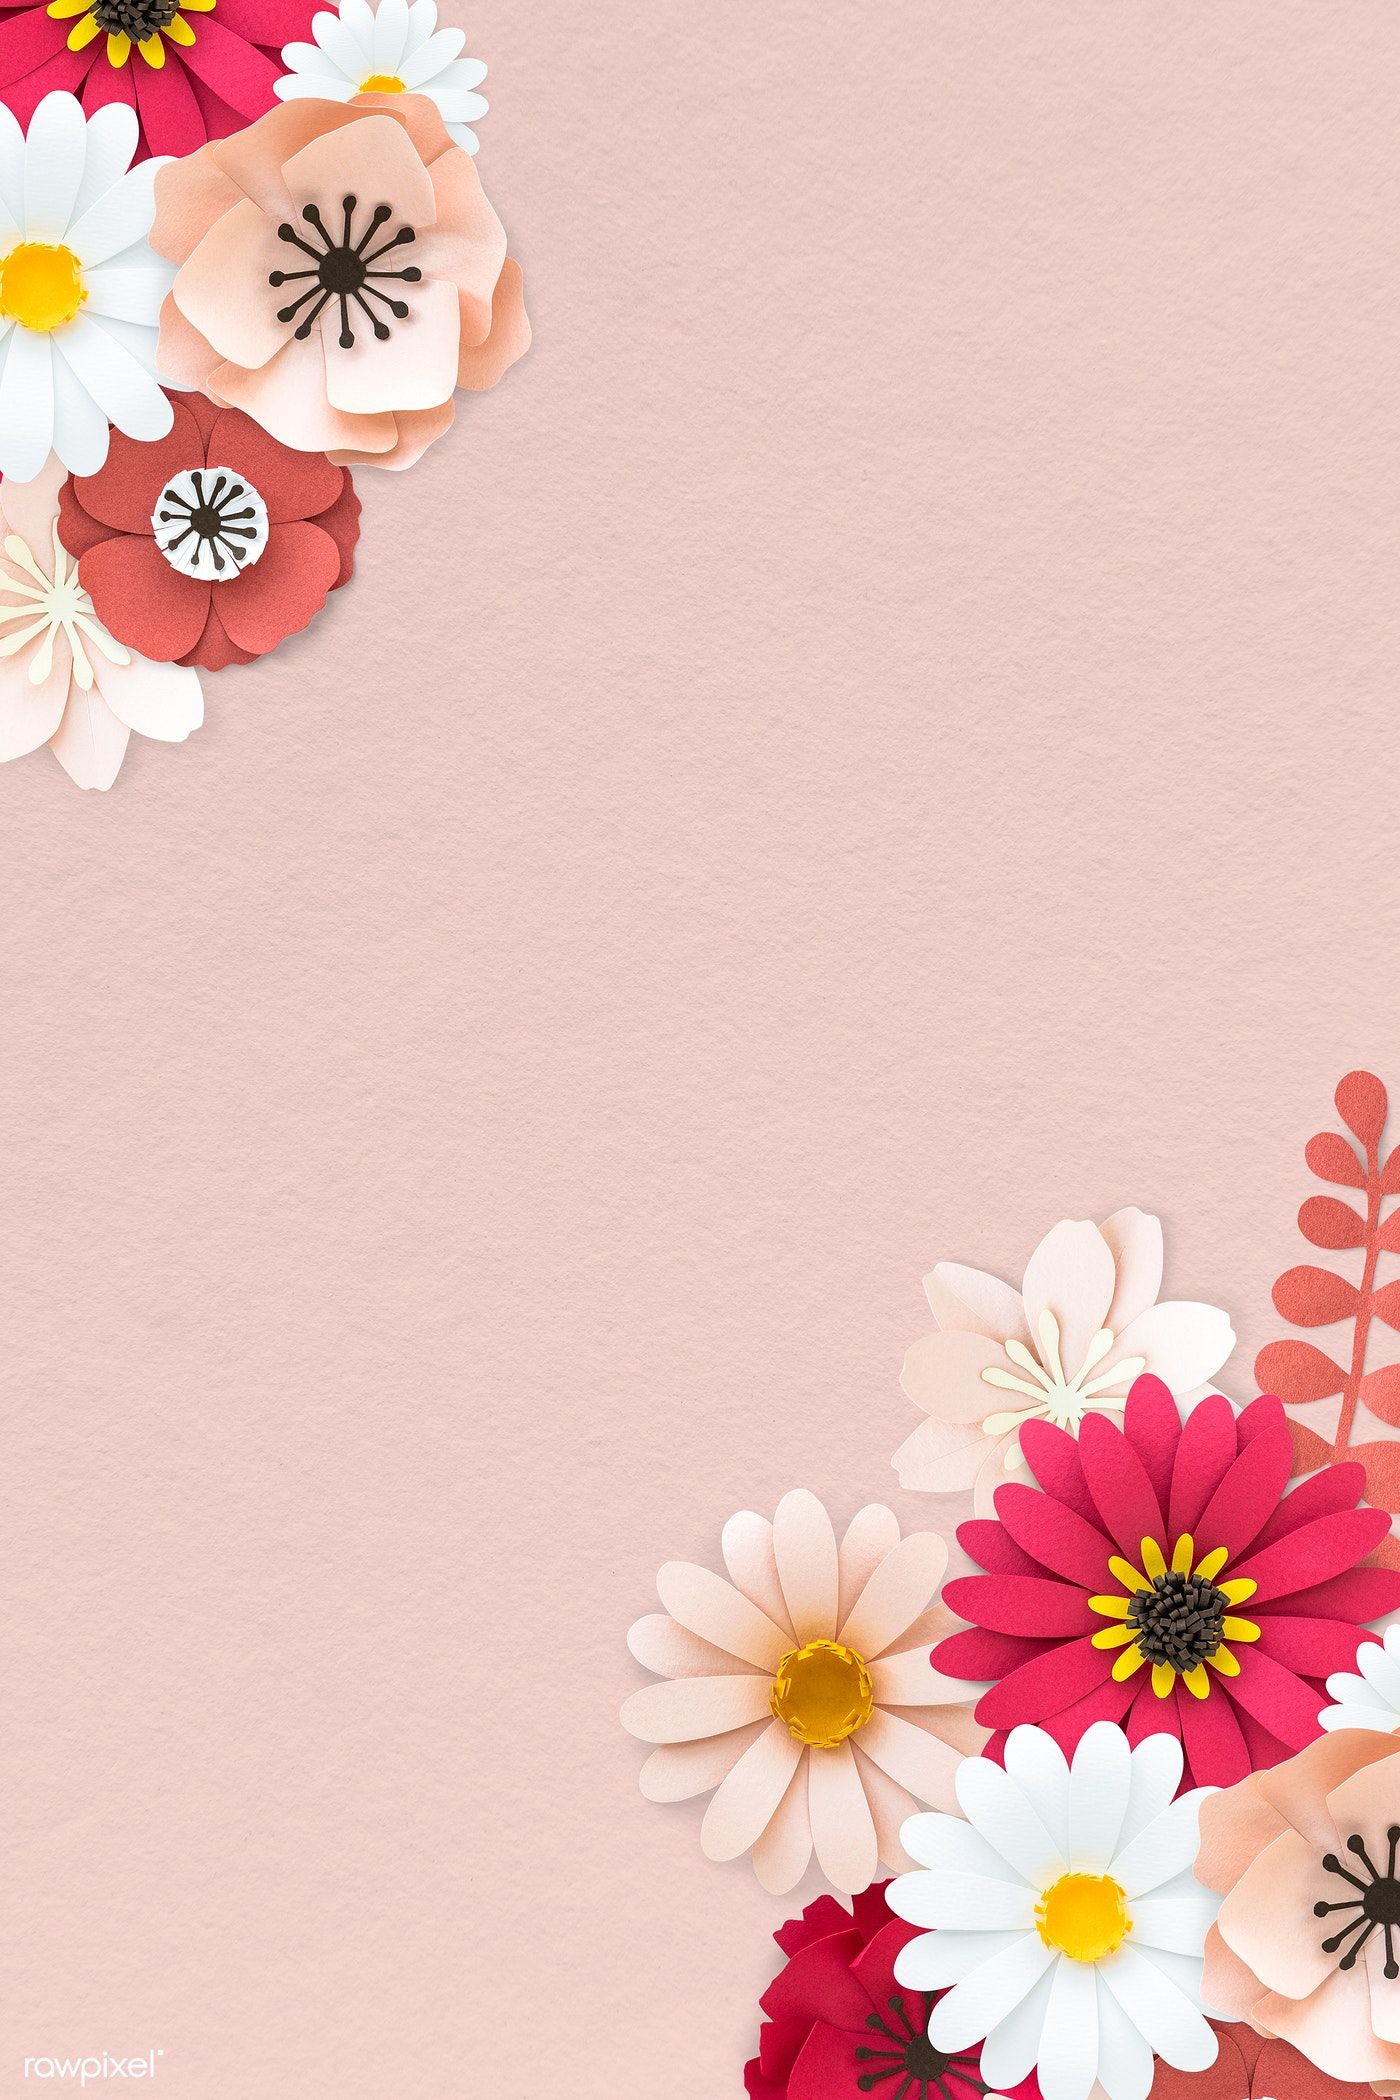 Download Premium Psd Of Pink Paper Craft Flower On Pink Background Flower Backgrounds Paper Background Texture Flower Crafts